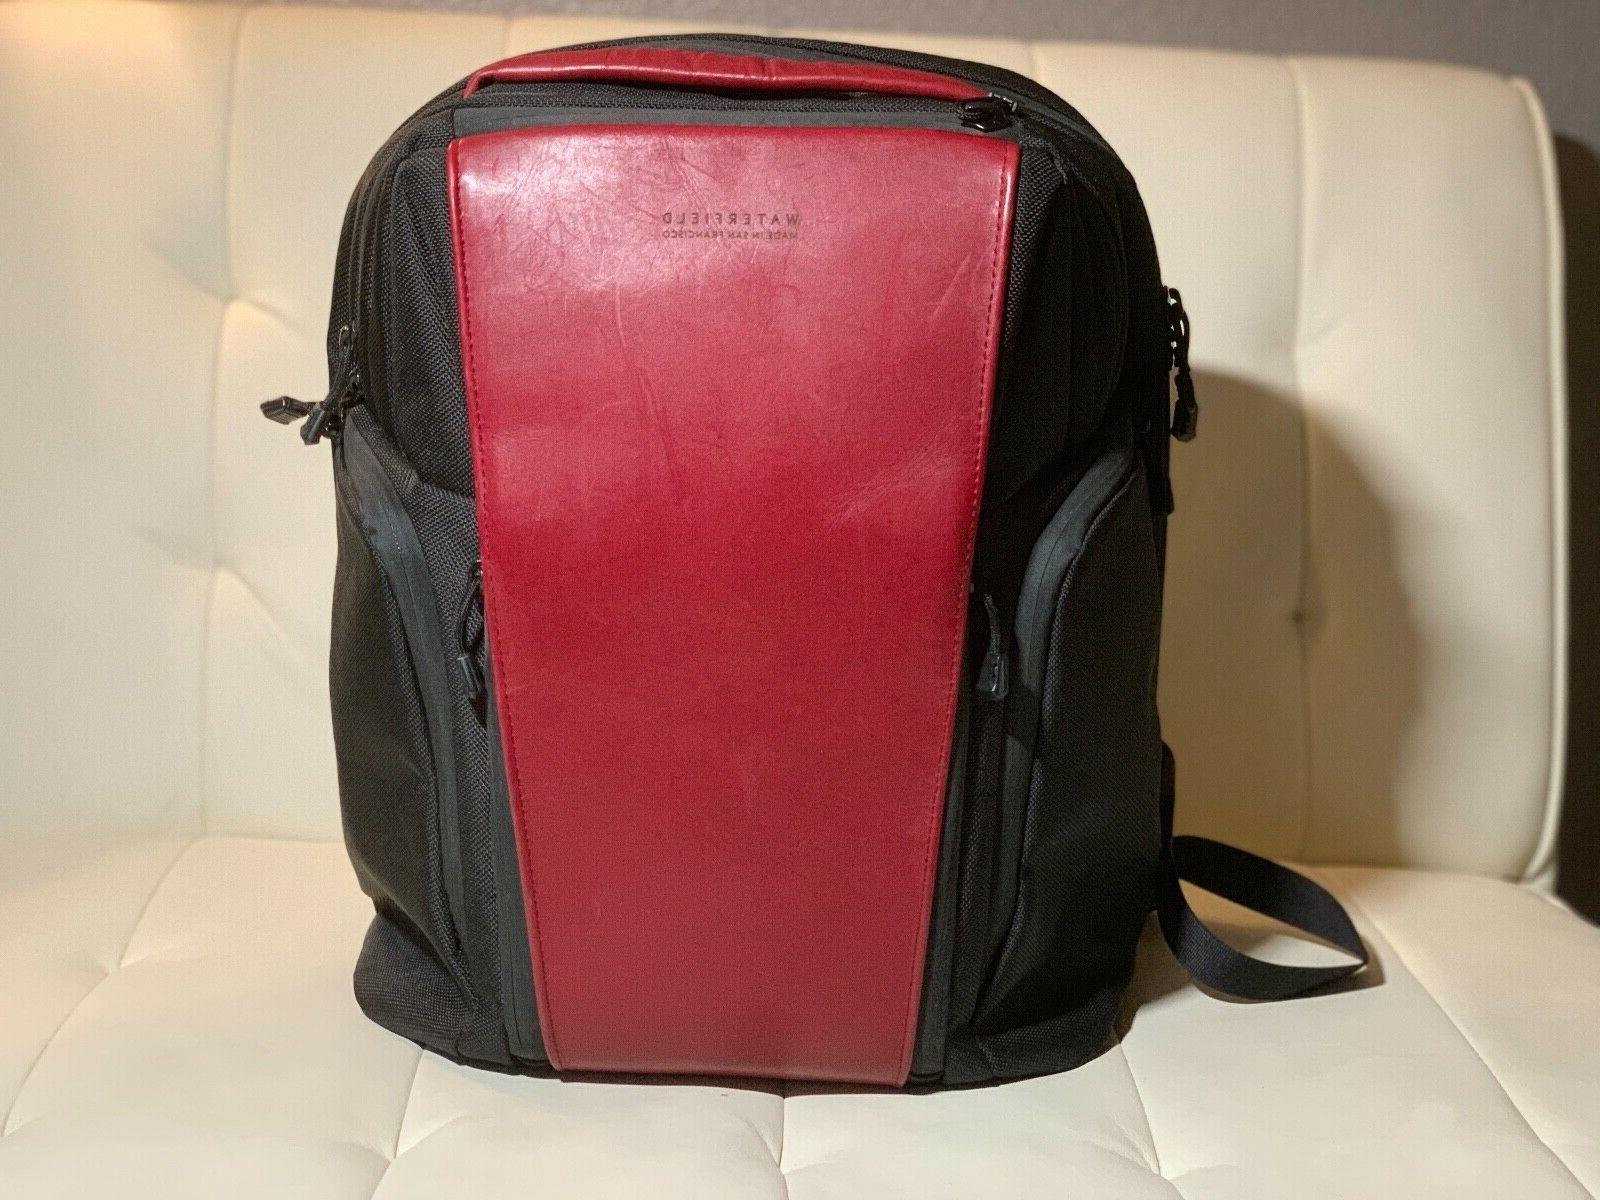 WaterfieldPRO Nylon with Crimson Leather Accent